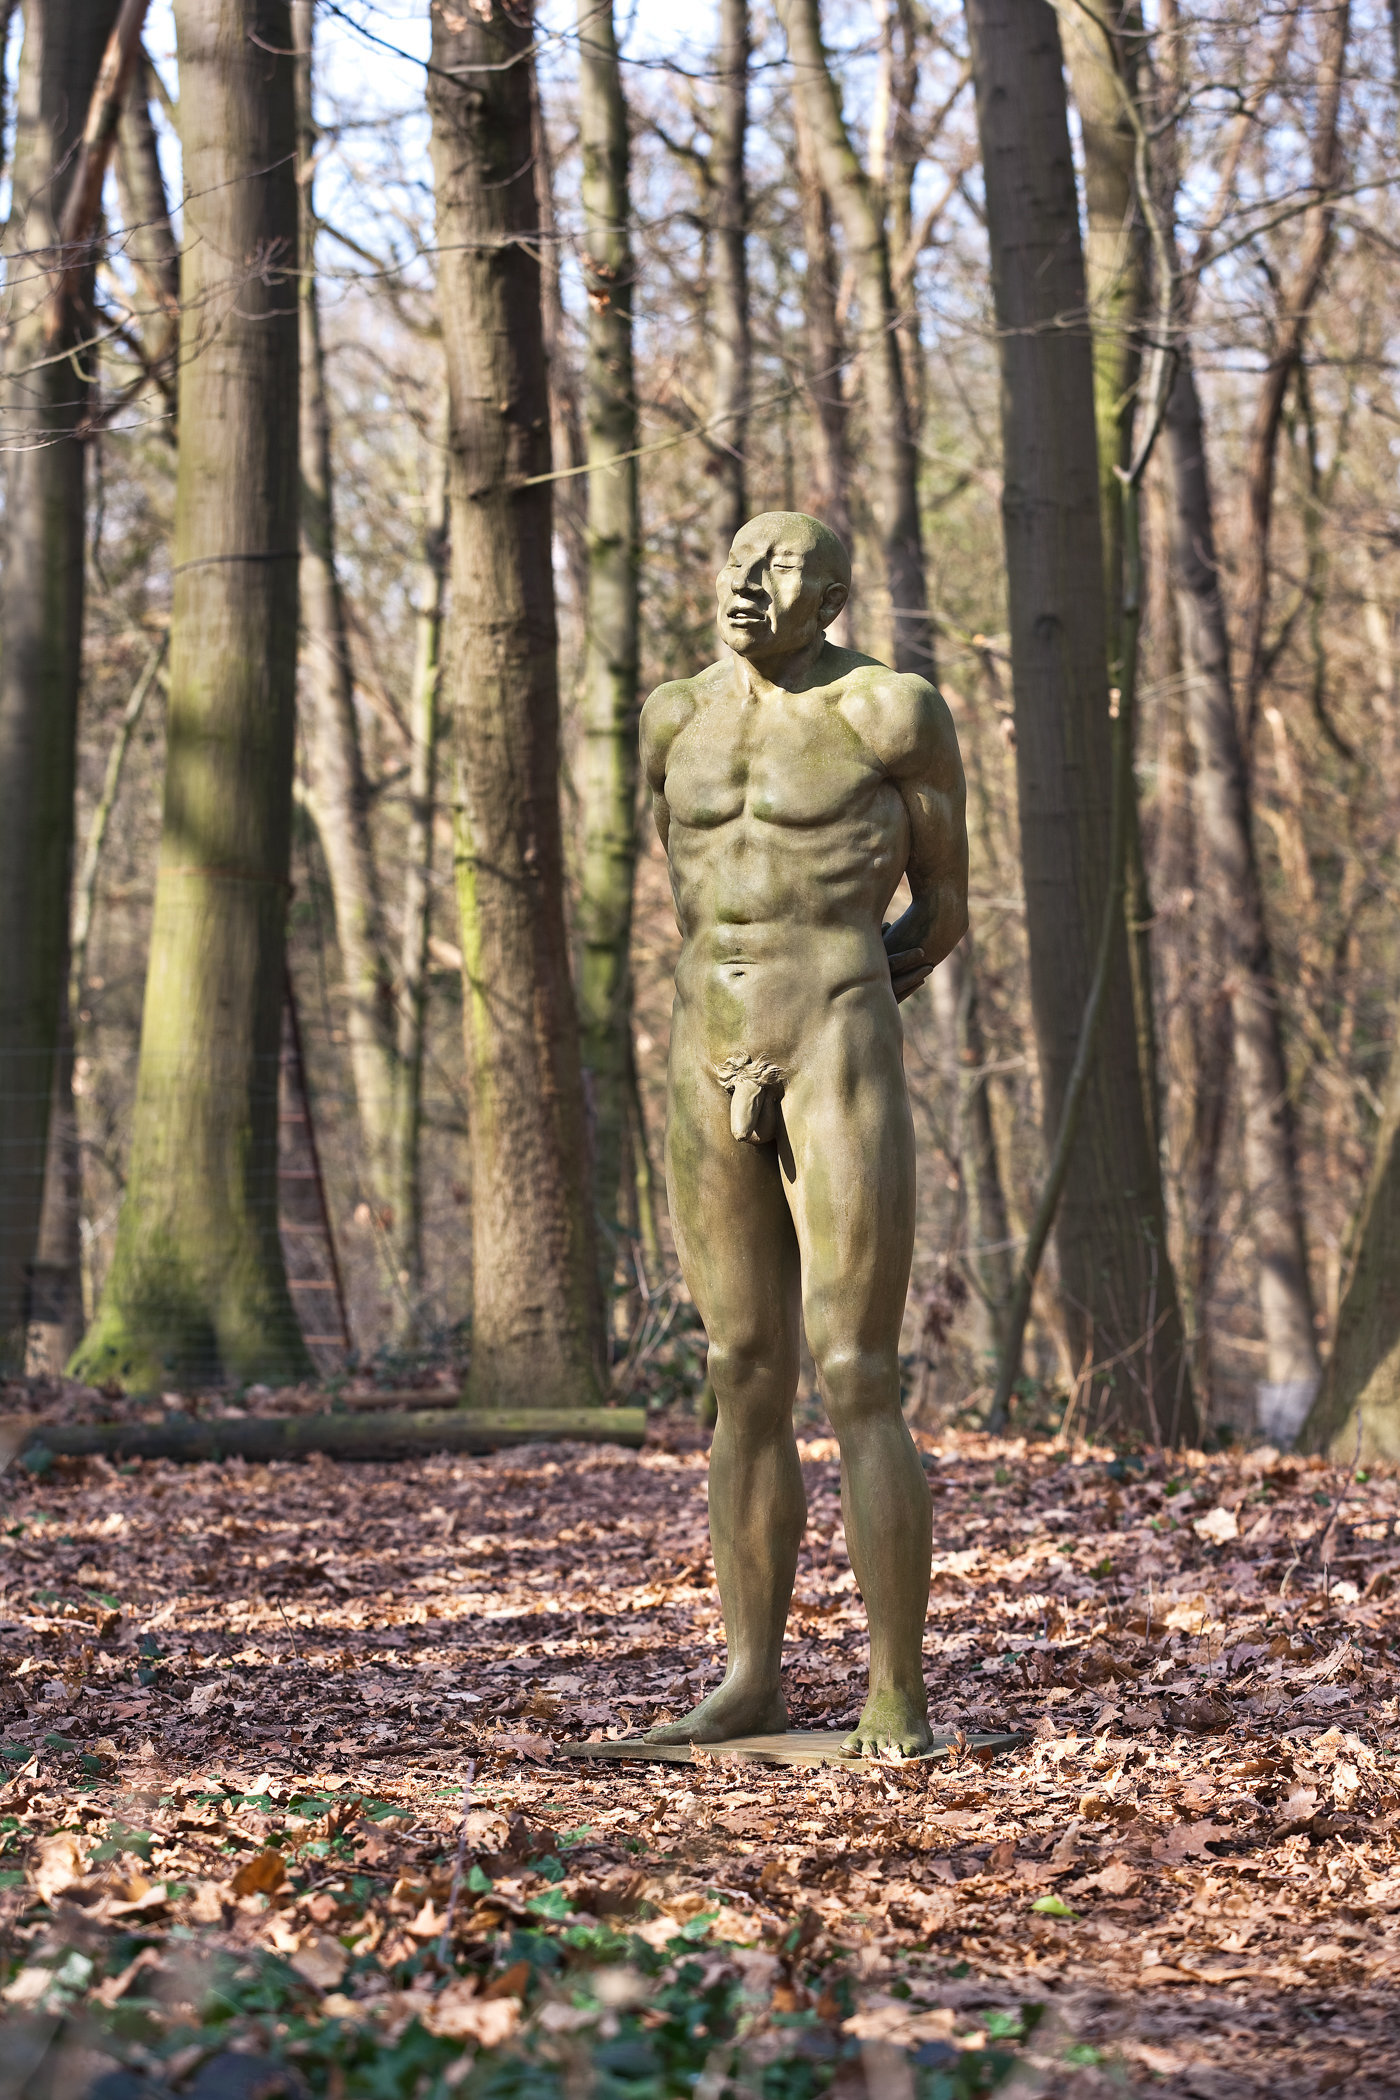 Statues of Nicolas van Ronkenstein, The Netherlands, for publication: Tussen Mythe en Werkelijkheid